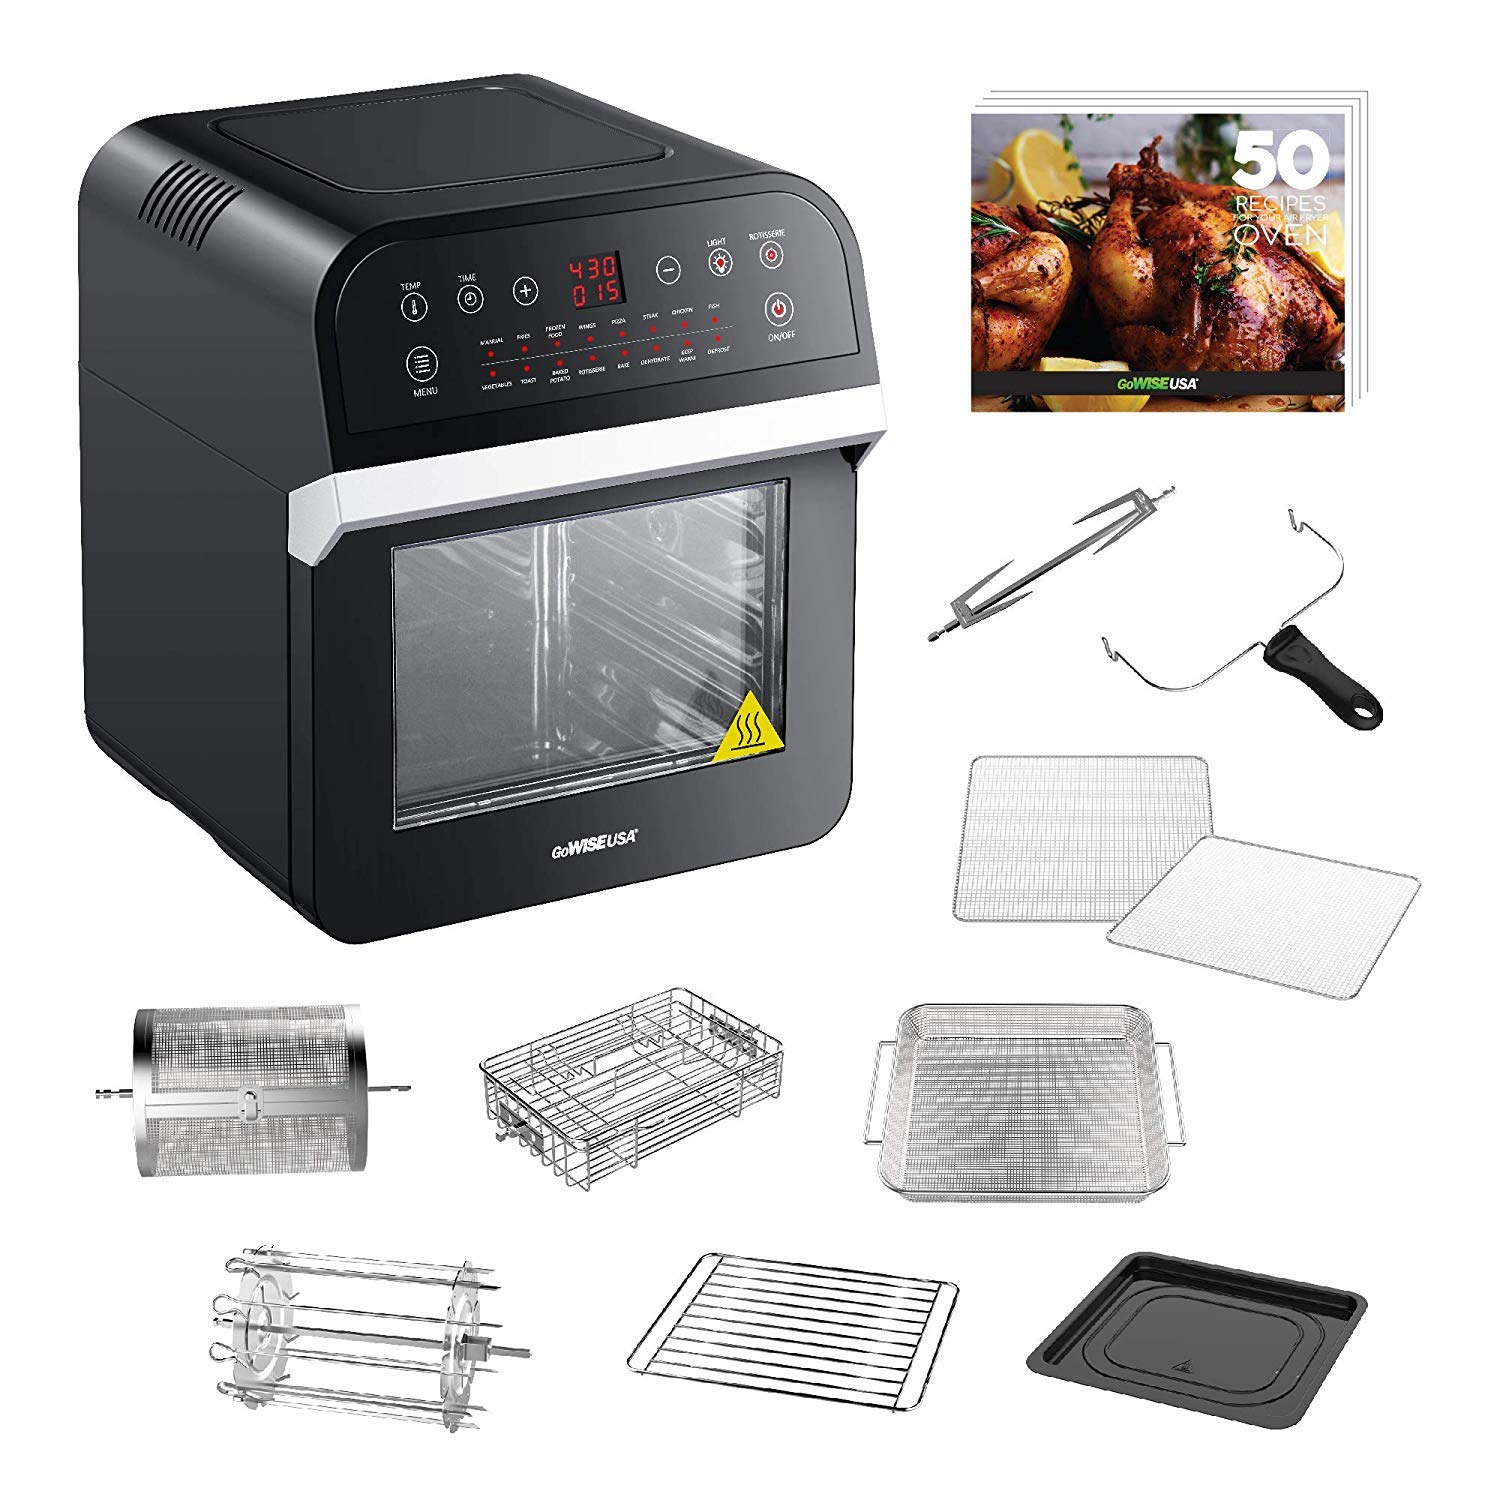 GoWISE USA 12.7-Quart Electric Air Fryer Oven w Rotisserie and Dehydrator Accessory Set and 50 Recipes Black Deluxe